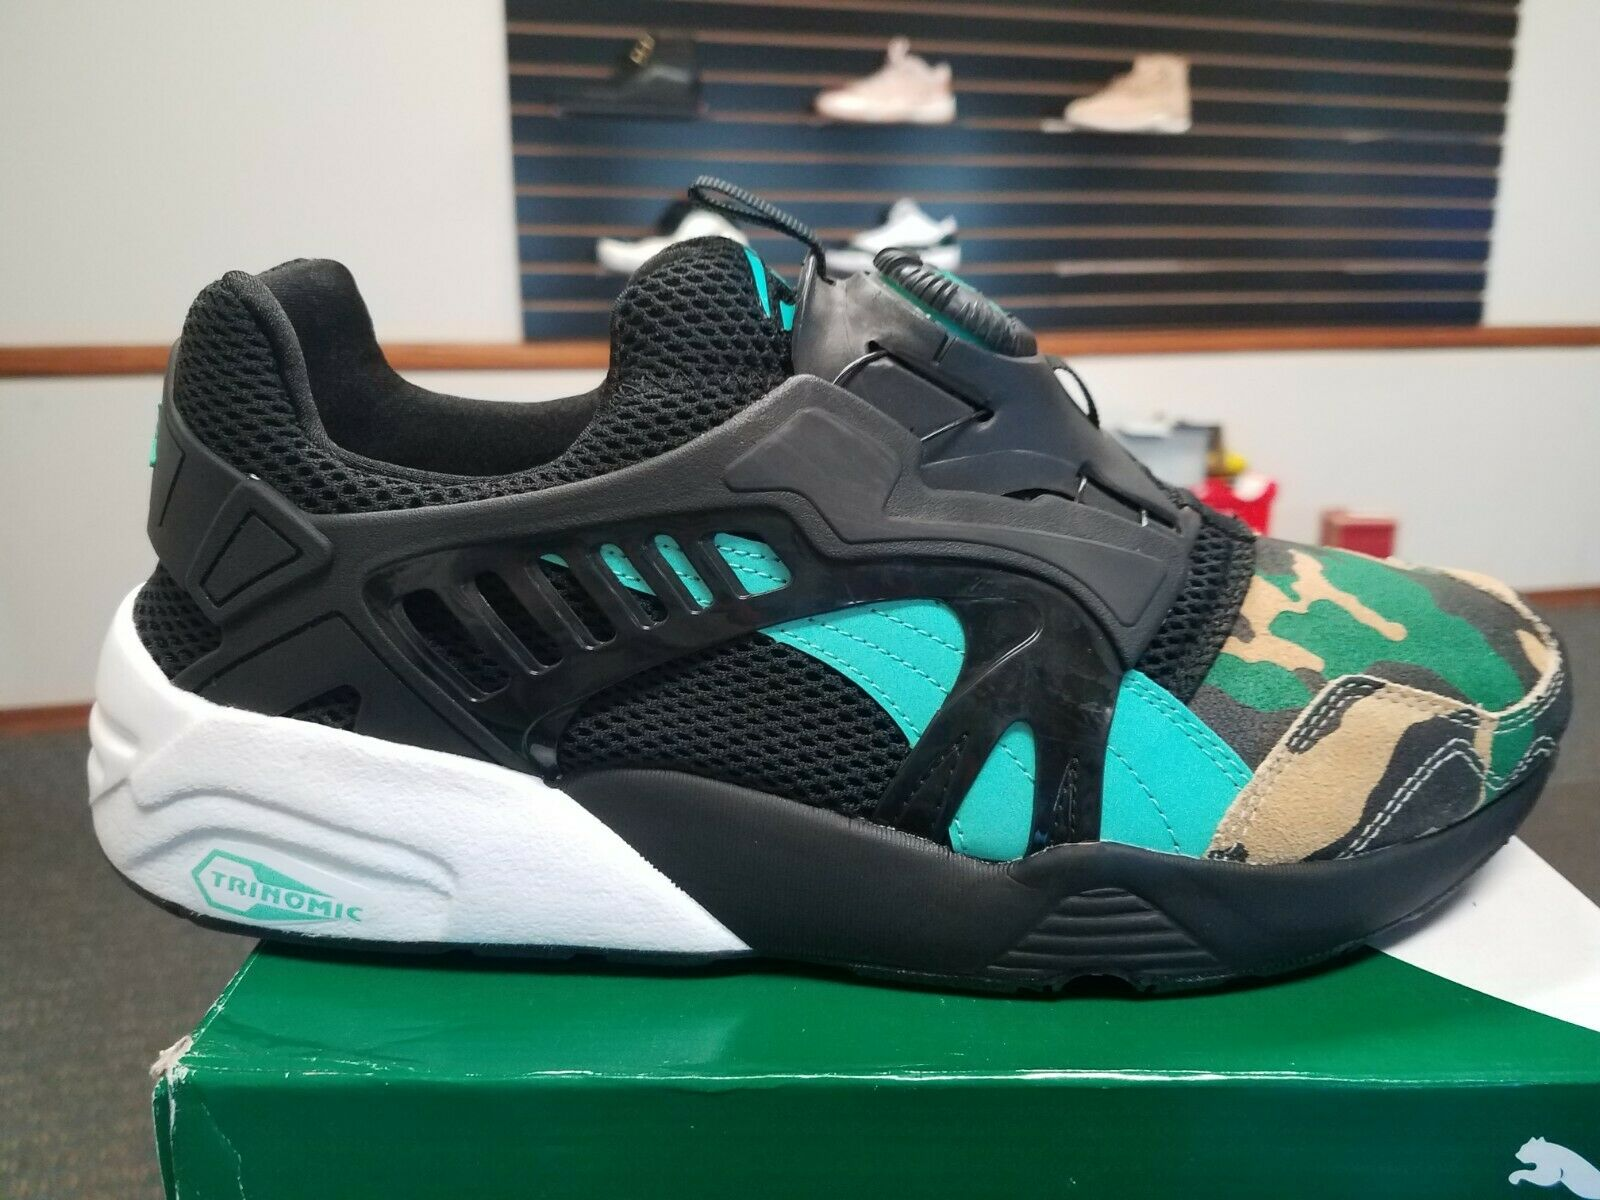 New in Box Puma Disc Blaze nuit Jungle x Atmos 363060-01 Atmos nuit Jungle